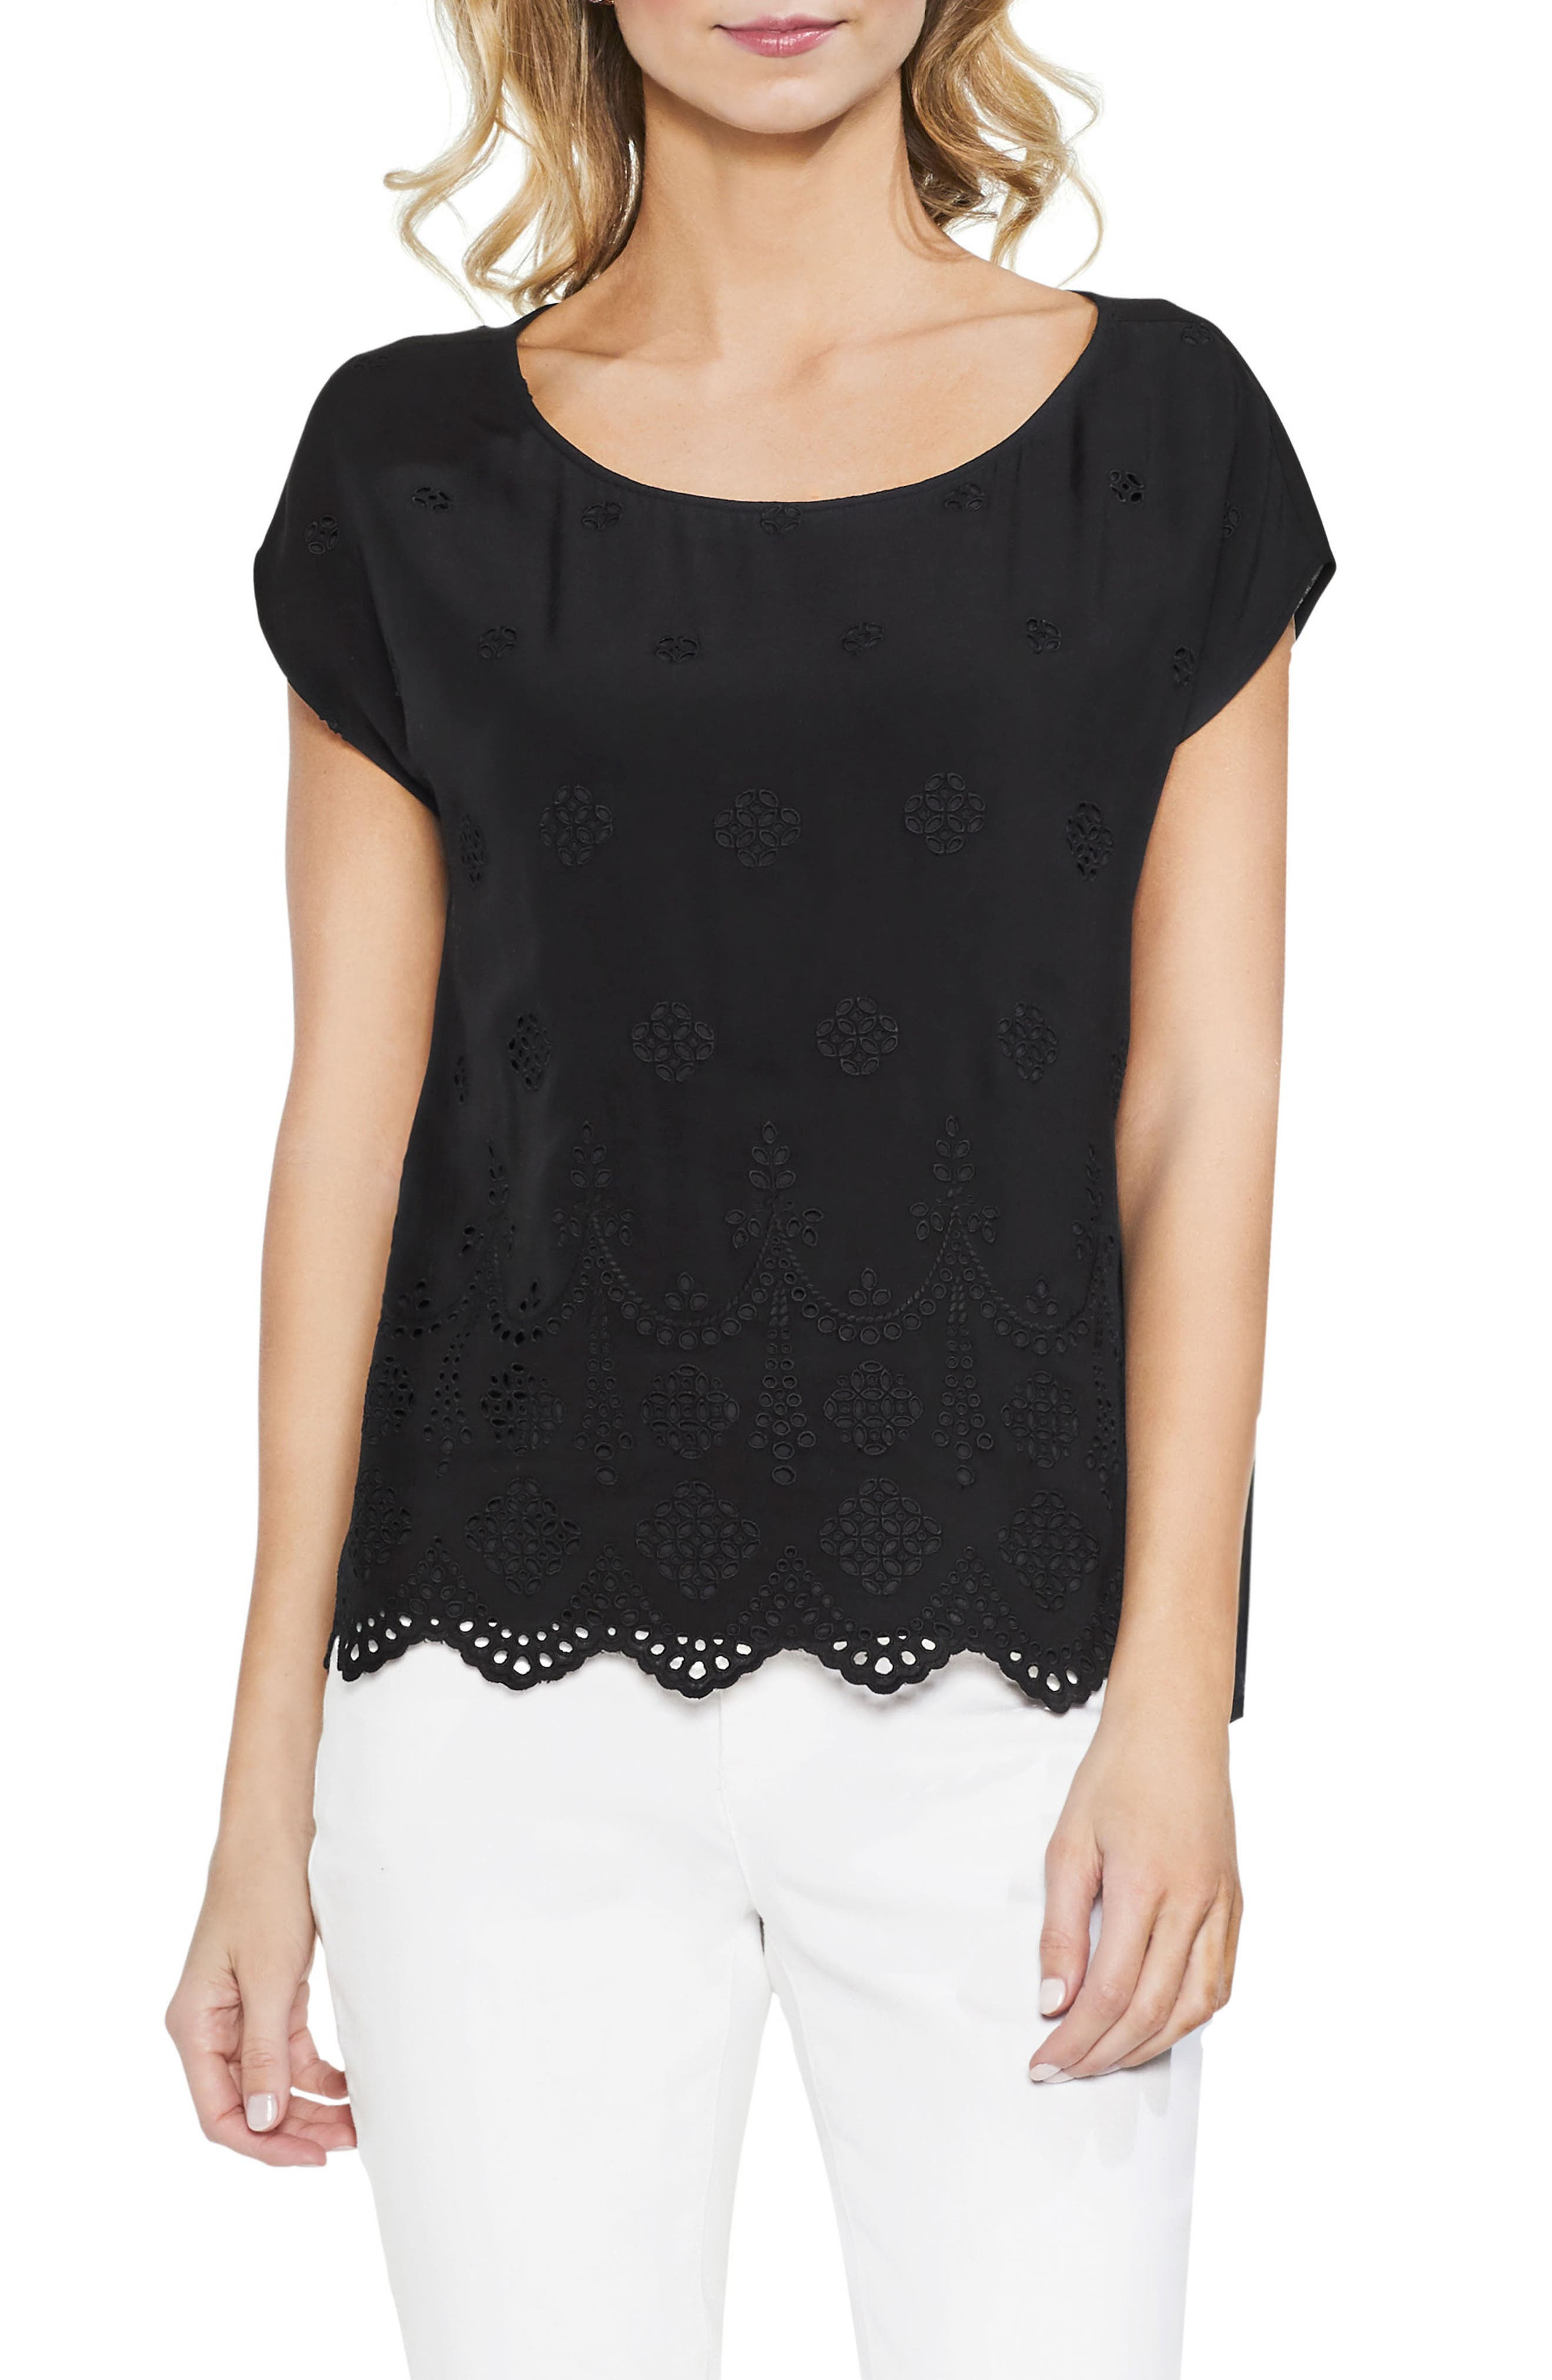 VINCE CAMUTO Scalloped Eyelet Top, Main, color, 001